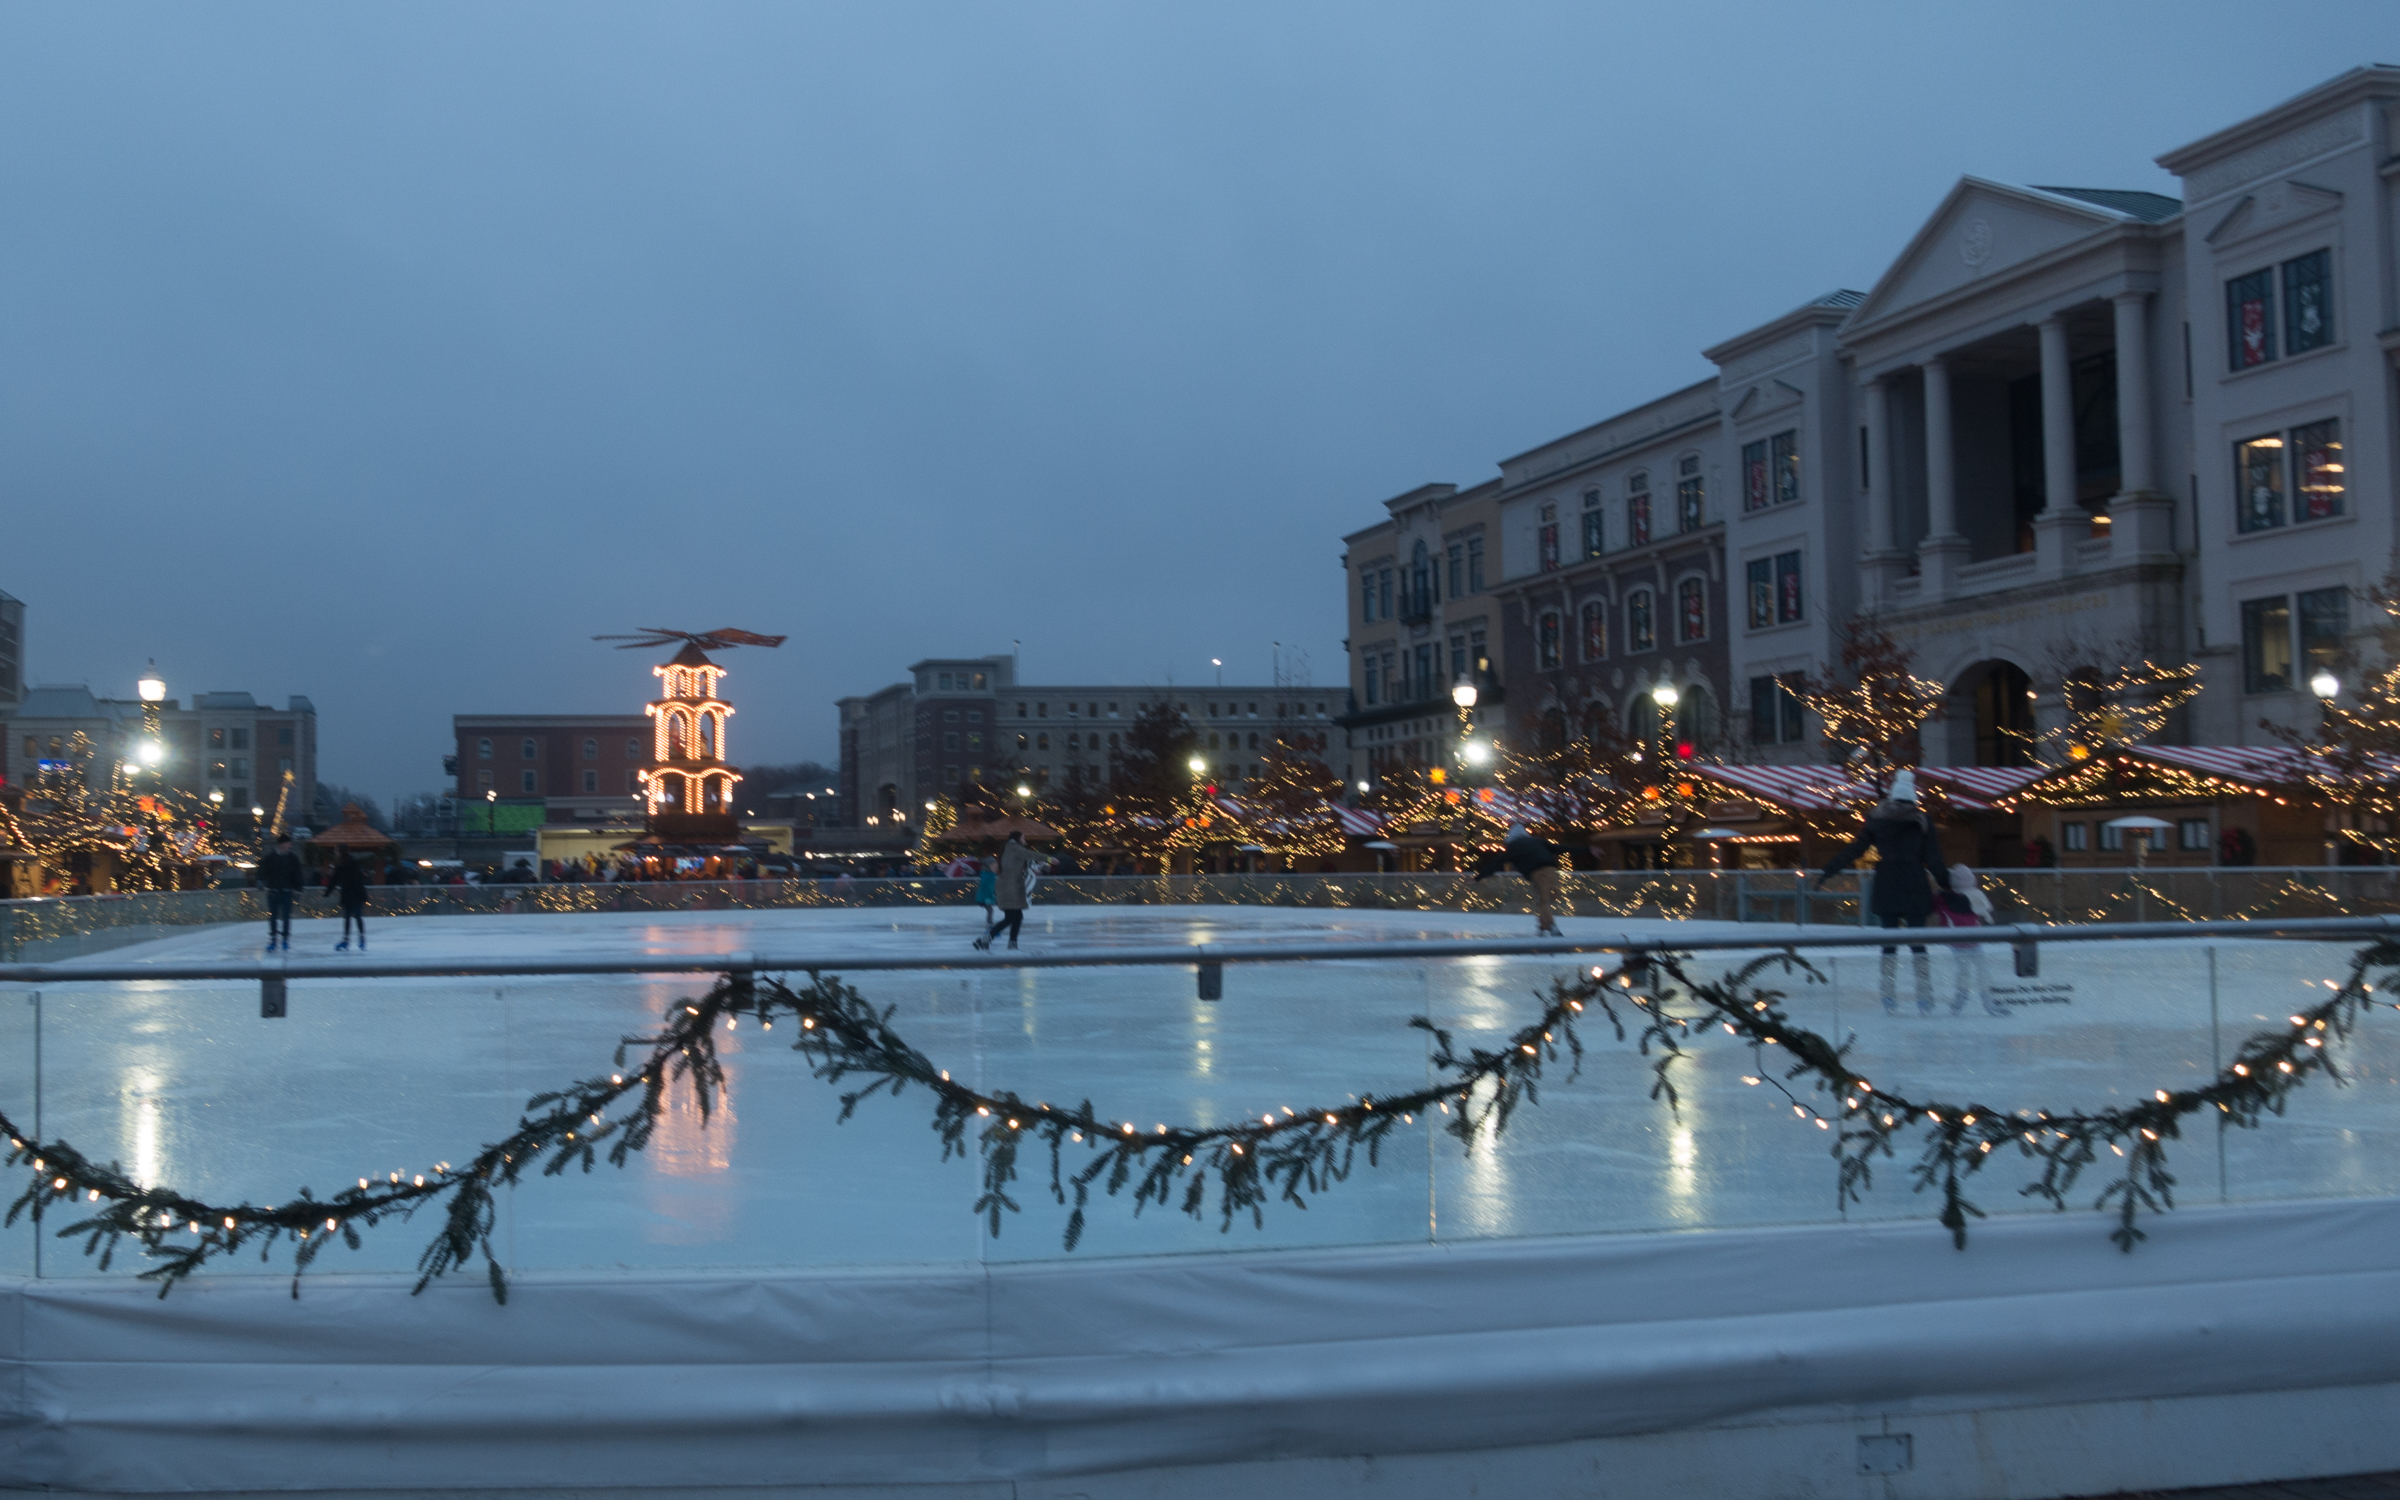 Ice skating is the perfect Christmas and winter activity. While visiting the Christkindlmarkt, be sure to schedule a time to ice skate at Ice at Center Green.